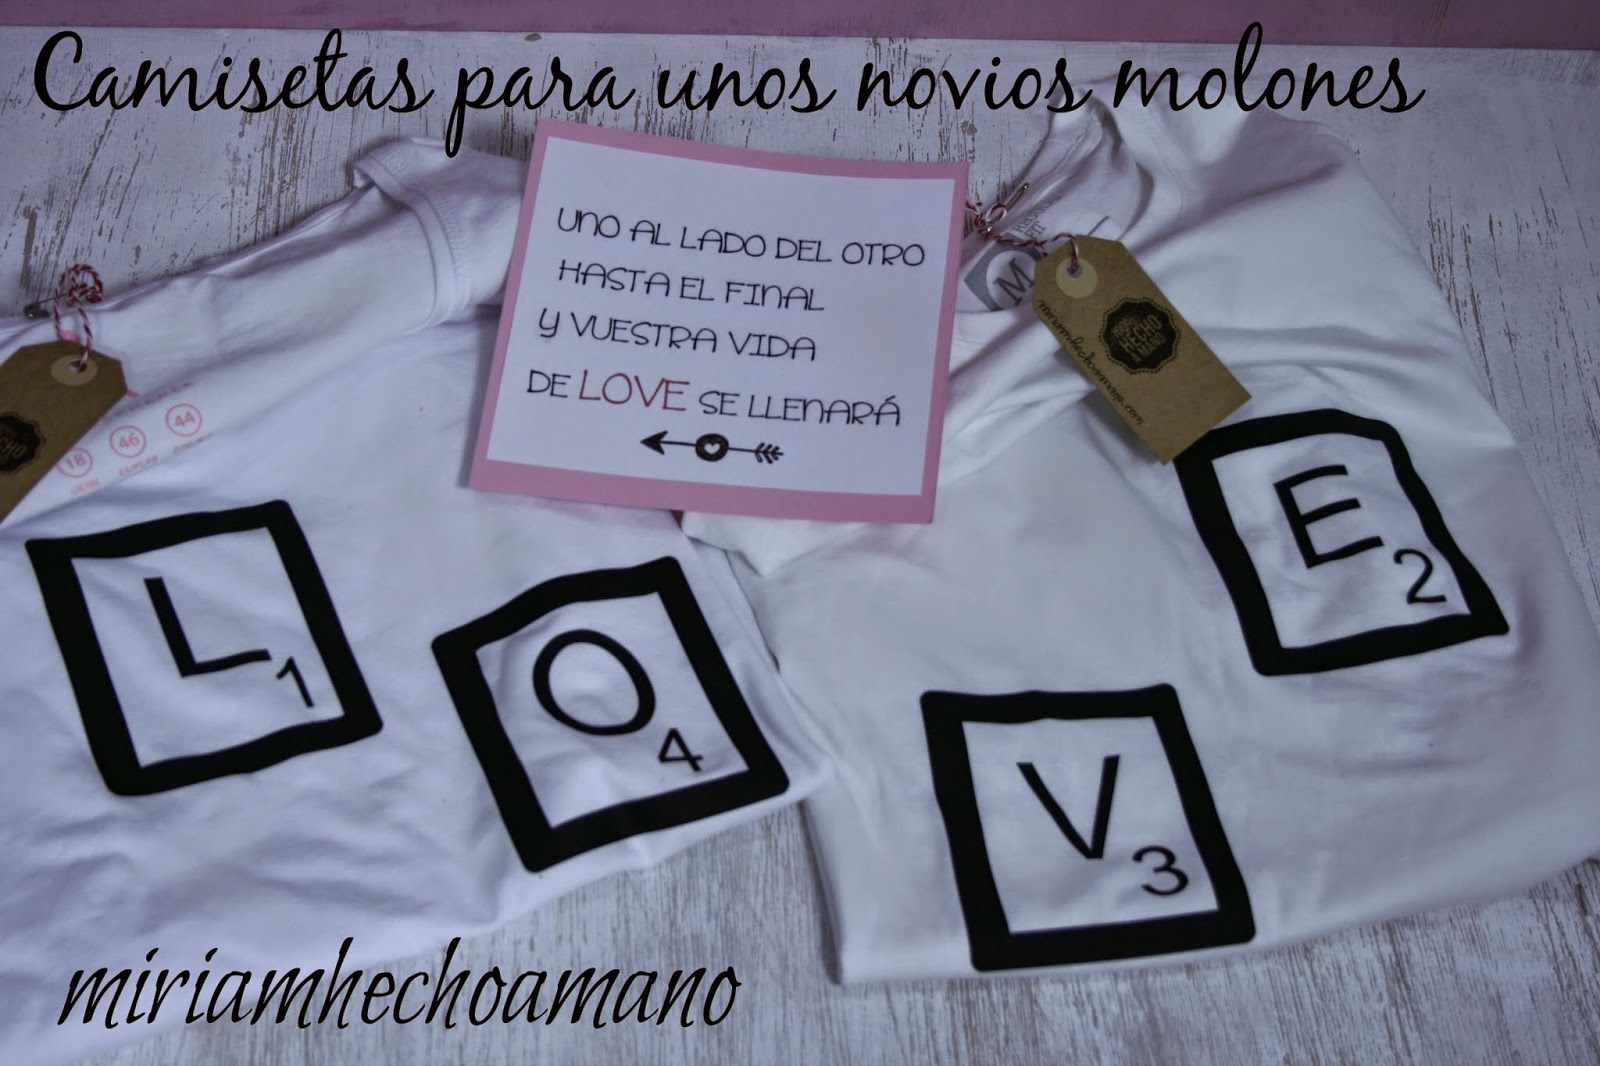 camiseta original parejas